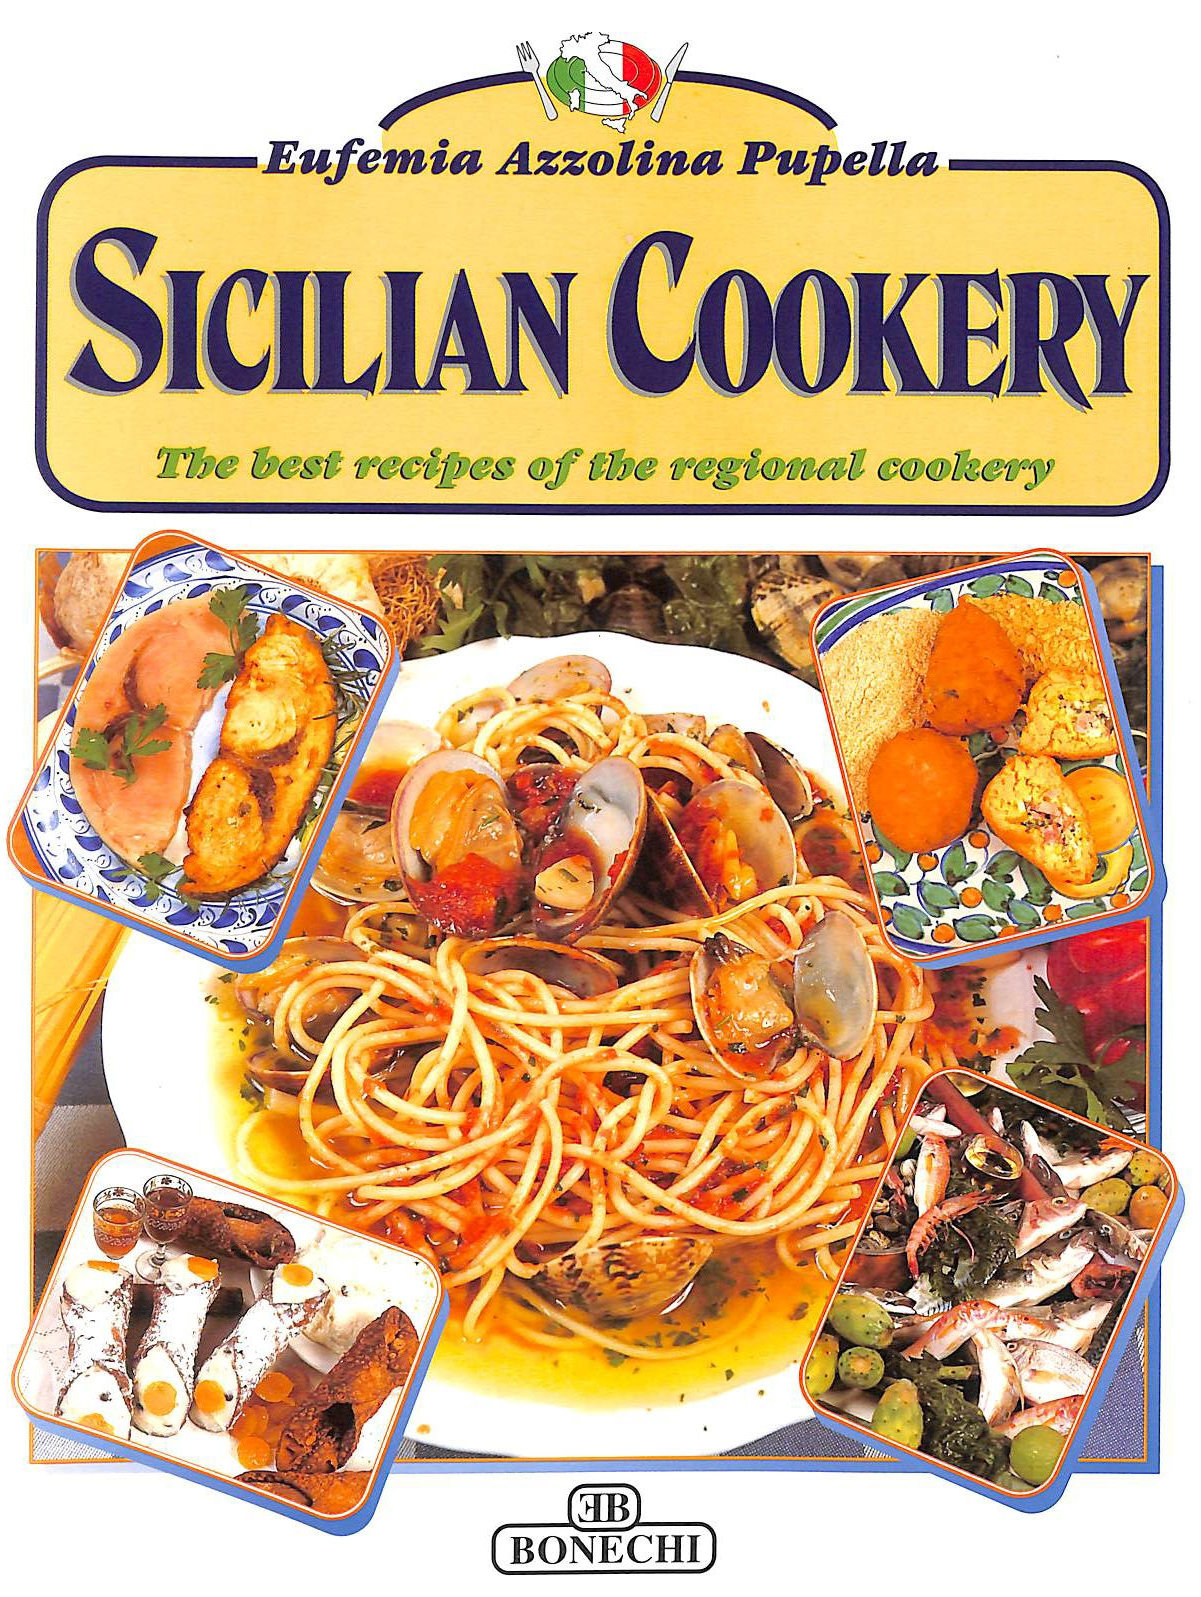 Image for Sicilian Cookery: The Best Recipes of the Regional Cookery